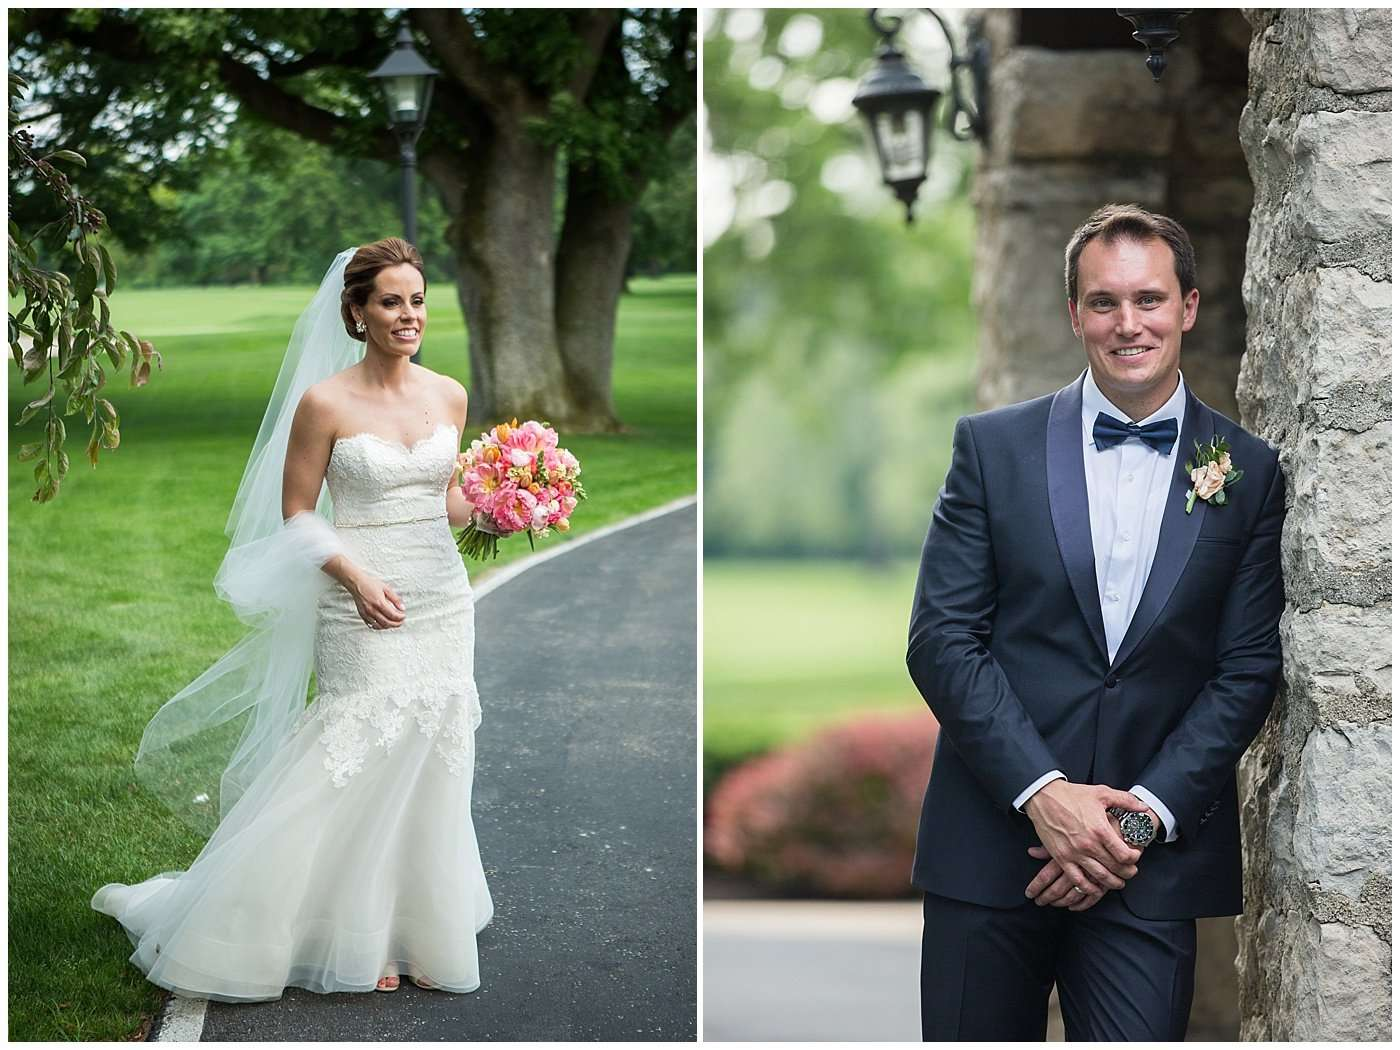 Kim & Lee | A Summer Wedding at Brookside Country Club 90